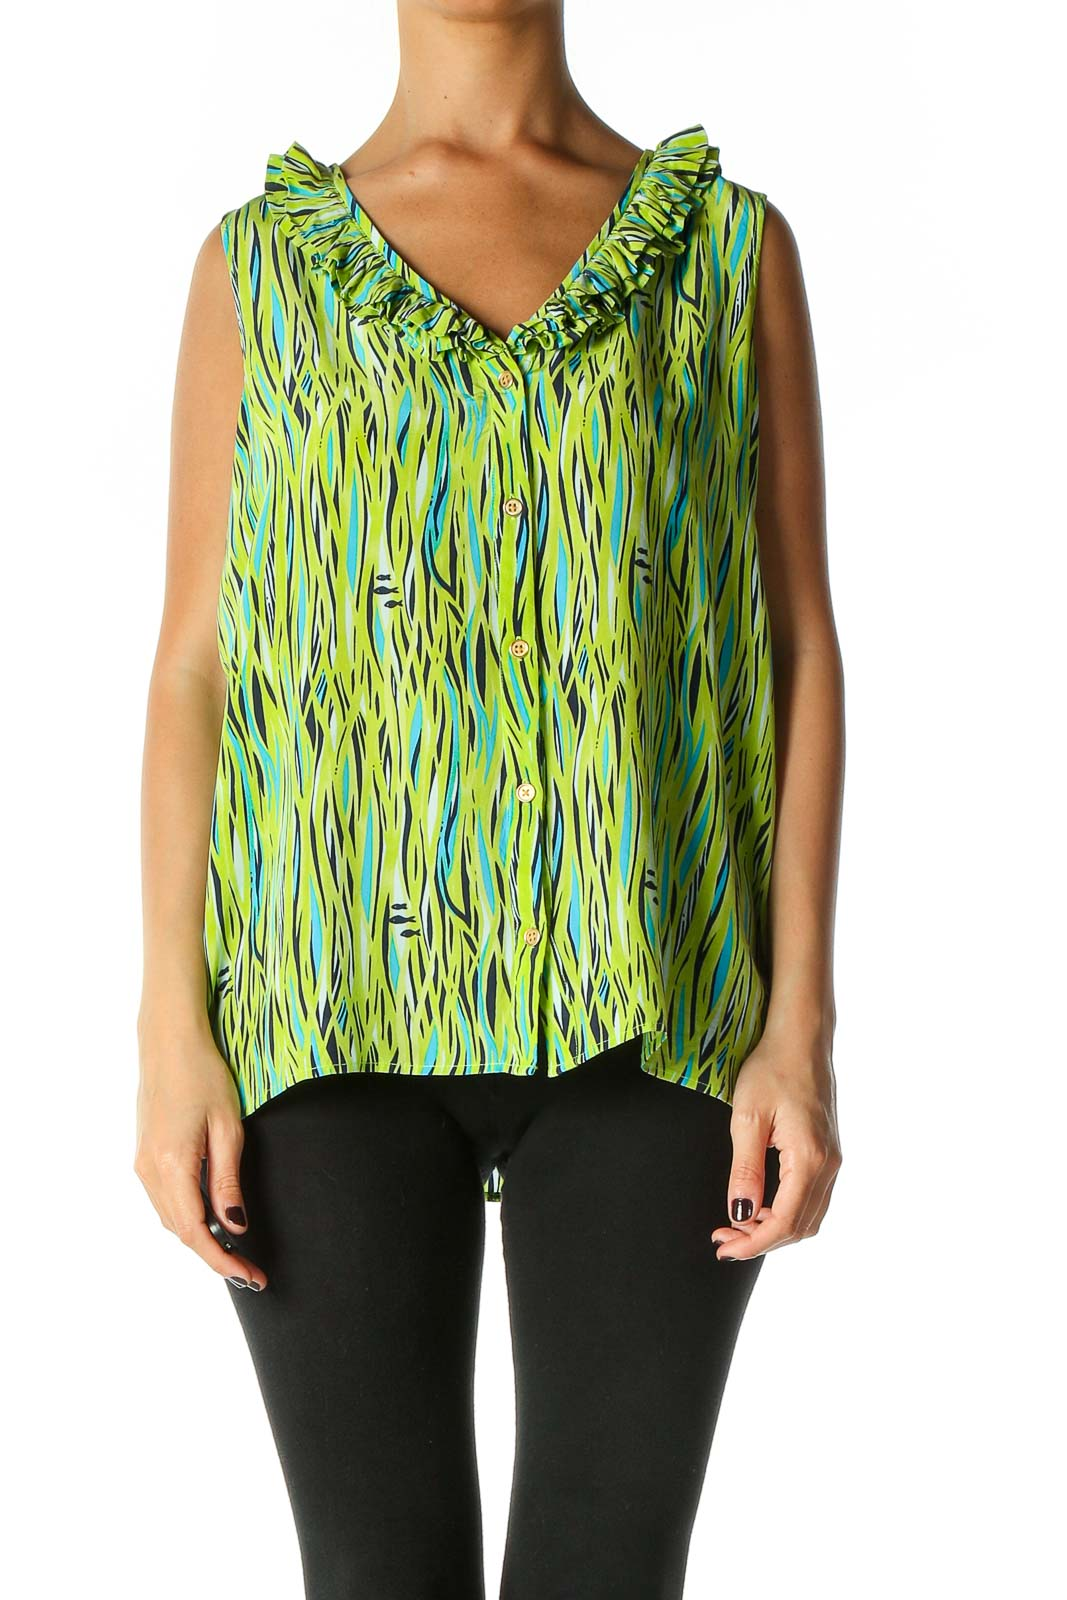 Green Graphic Print All Day Wear Blouse Front